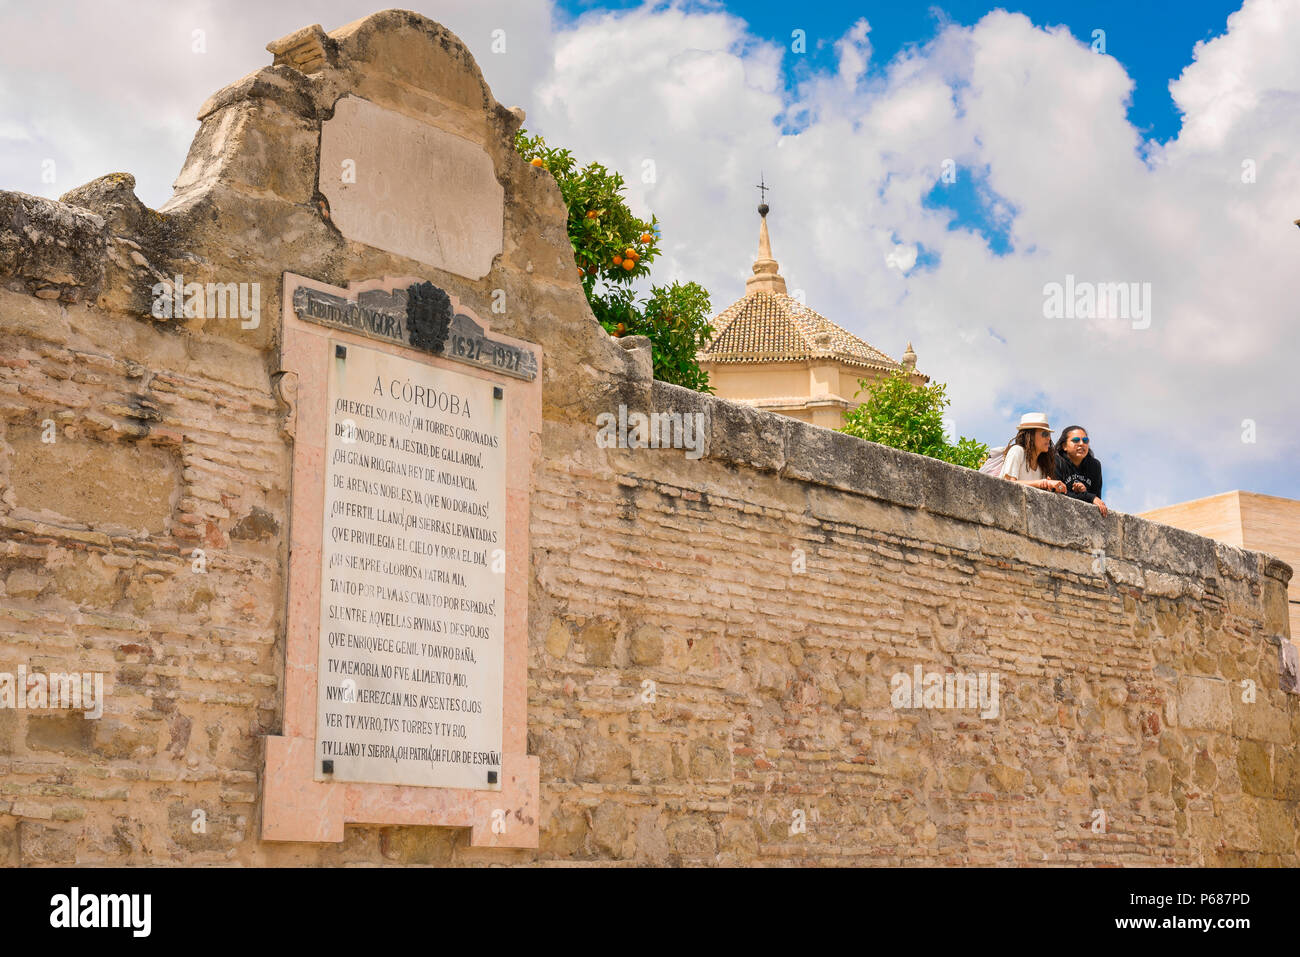 Andalucia Spain travel, two young women travelers lean over the old city wall in Cordoba (Cordova), Andalucia, Spain - Stock Image